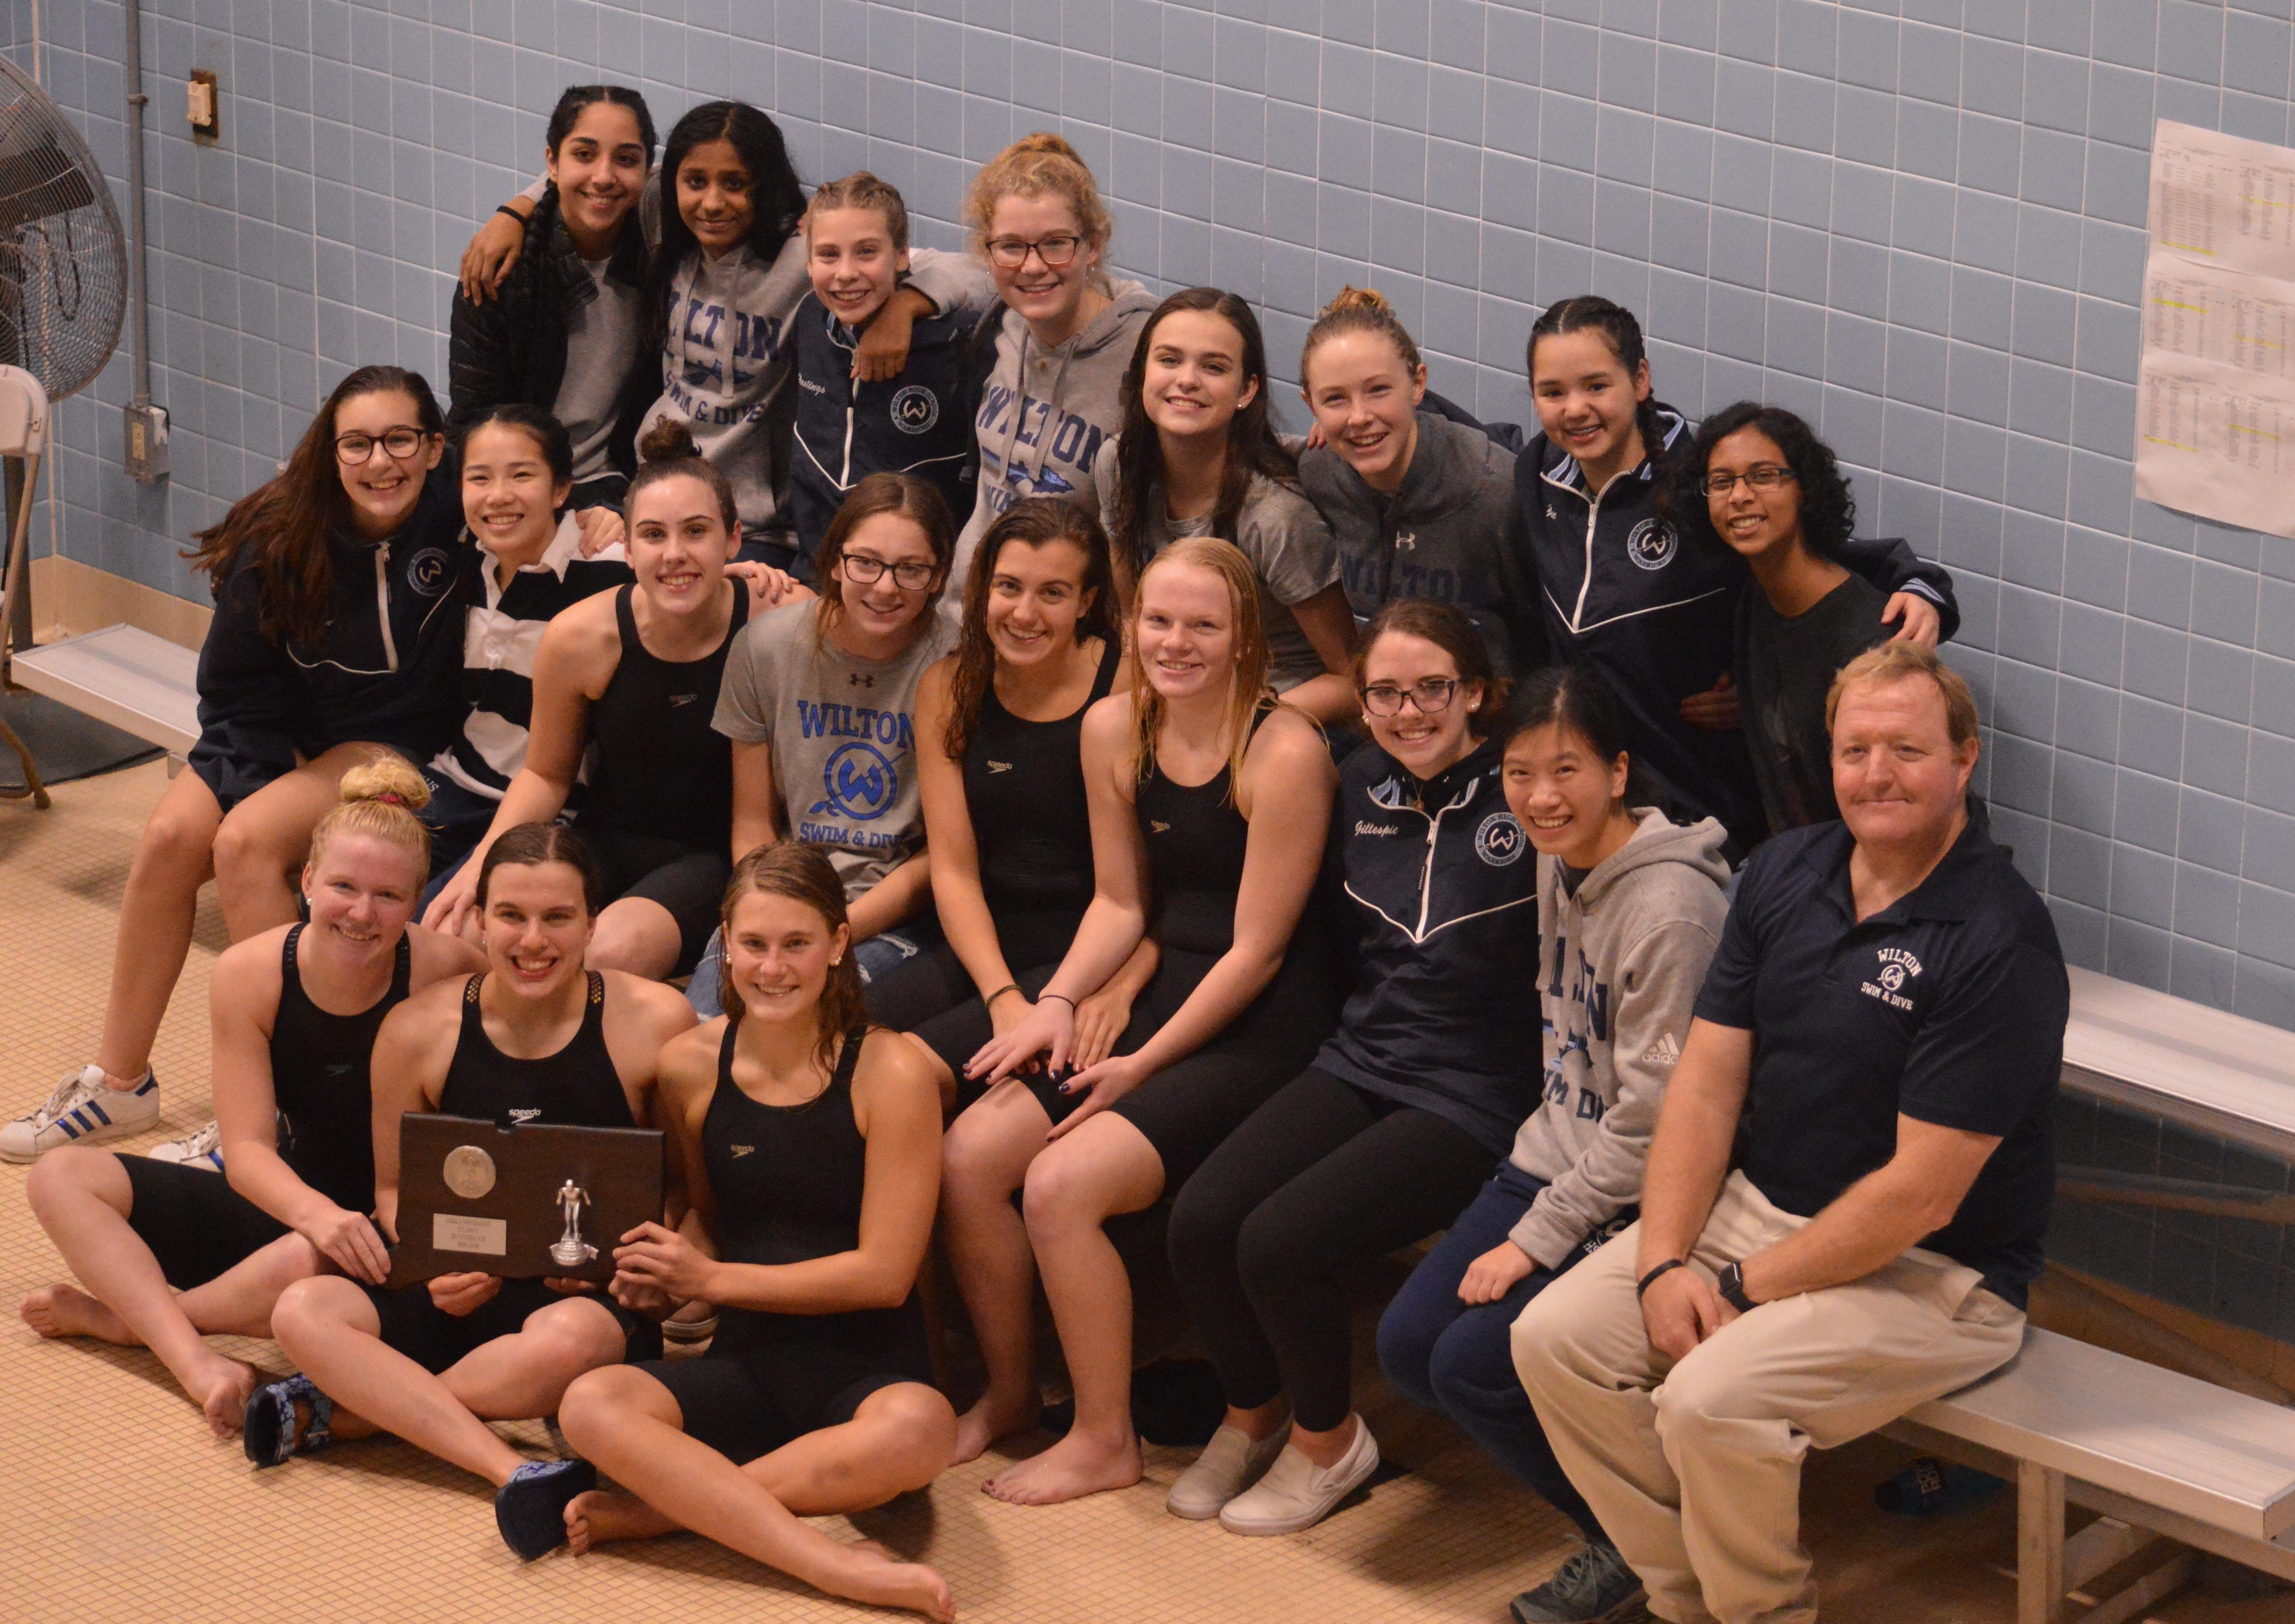 WHS Girls Swim & Dive Team Take 2nd in Class L State Finals, 8th in State Open Finals